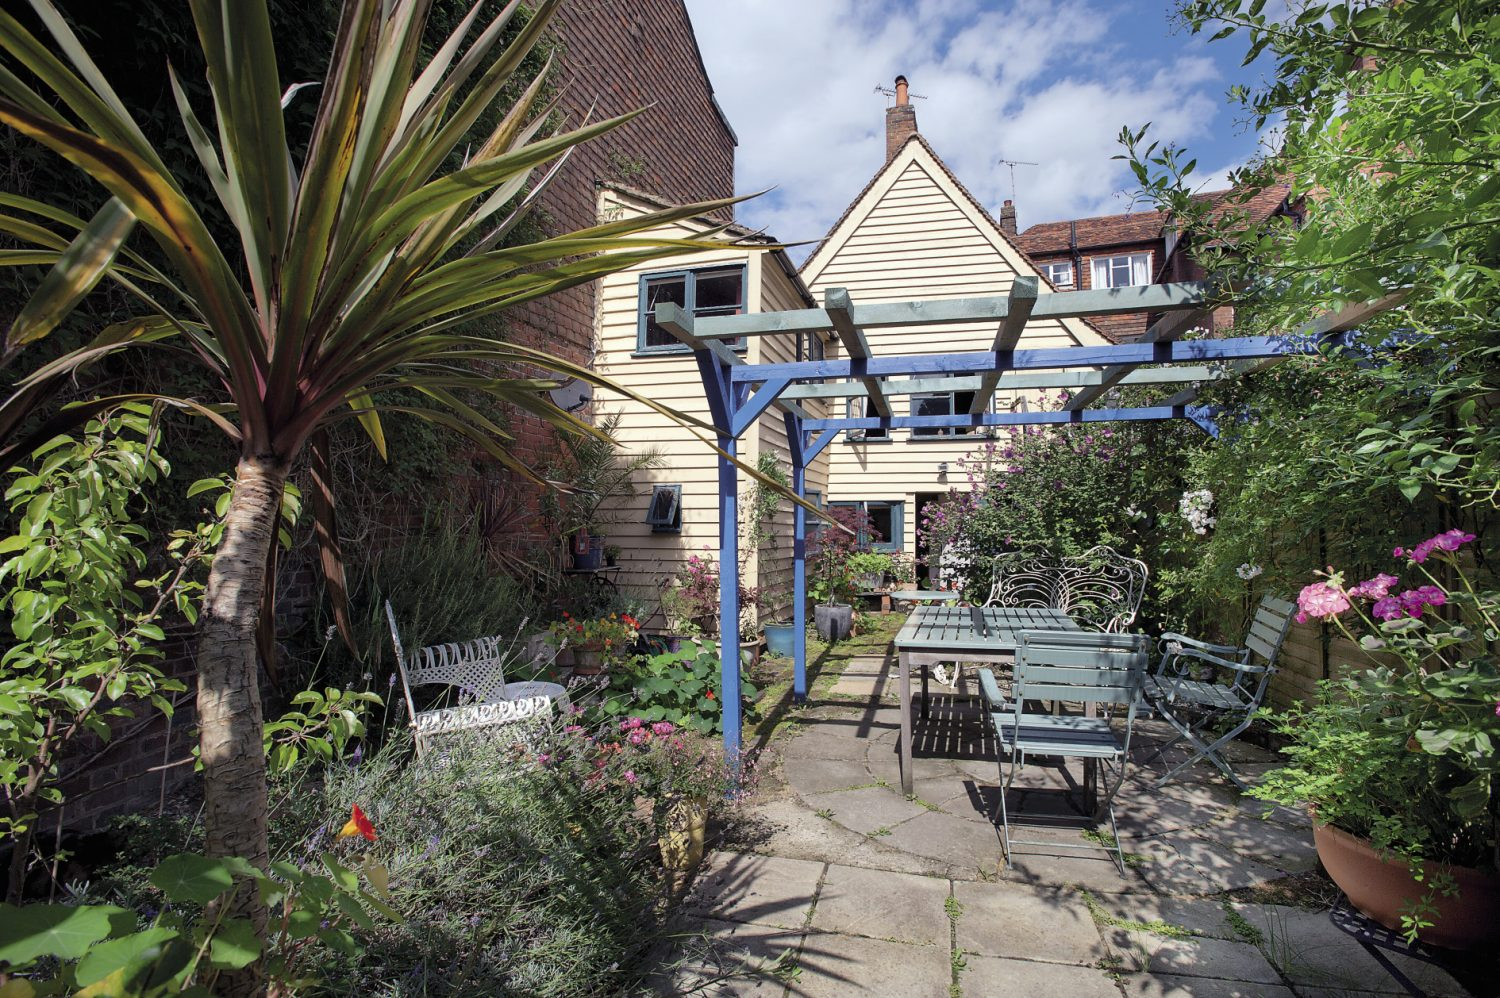 The beautifully secluded courtyard garden is a welcoming retreat